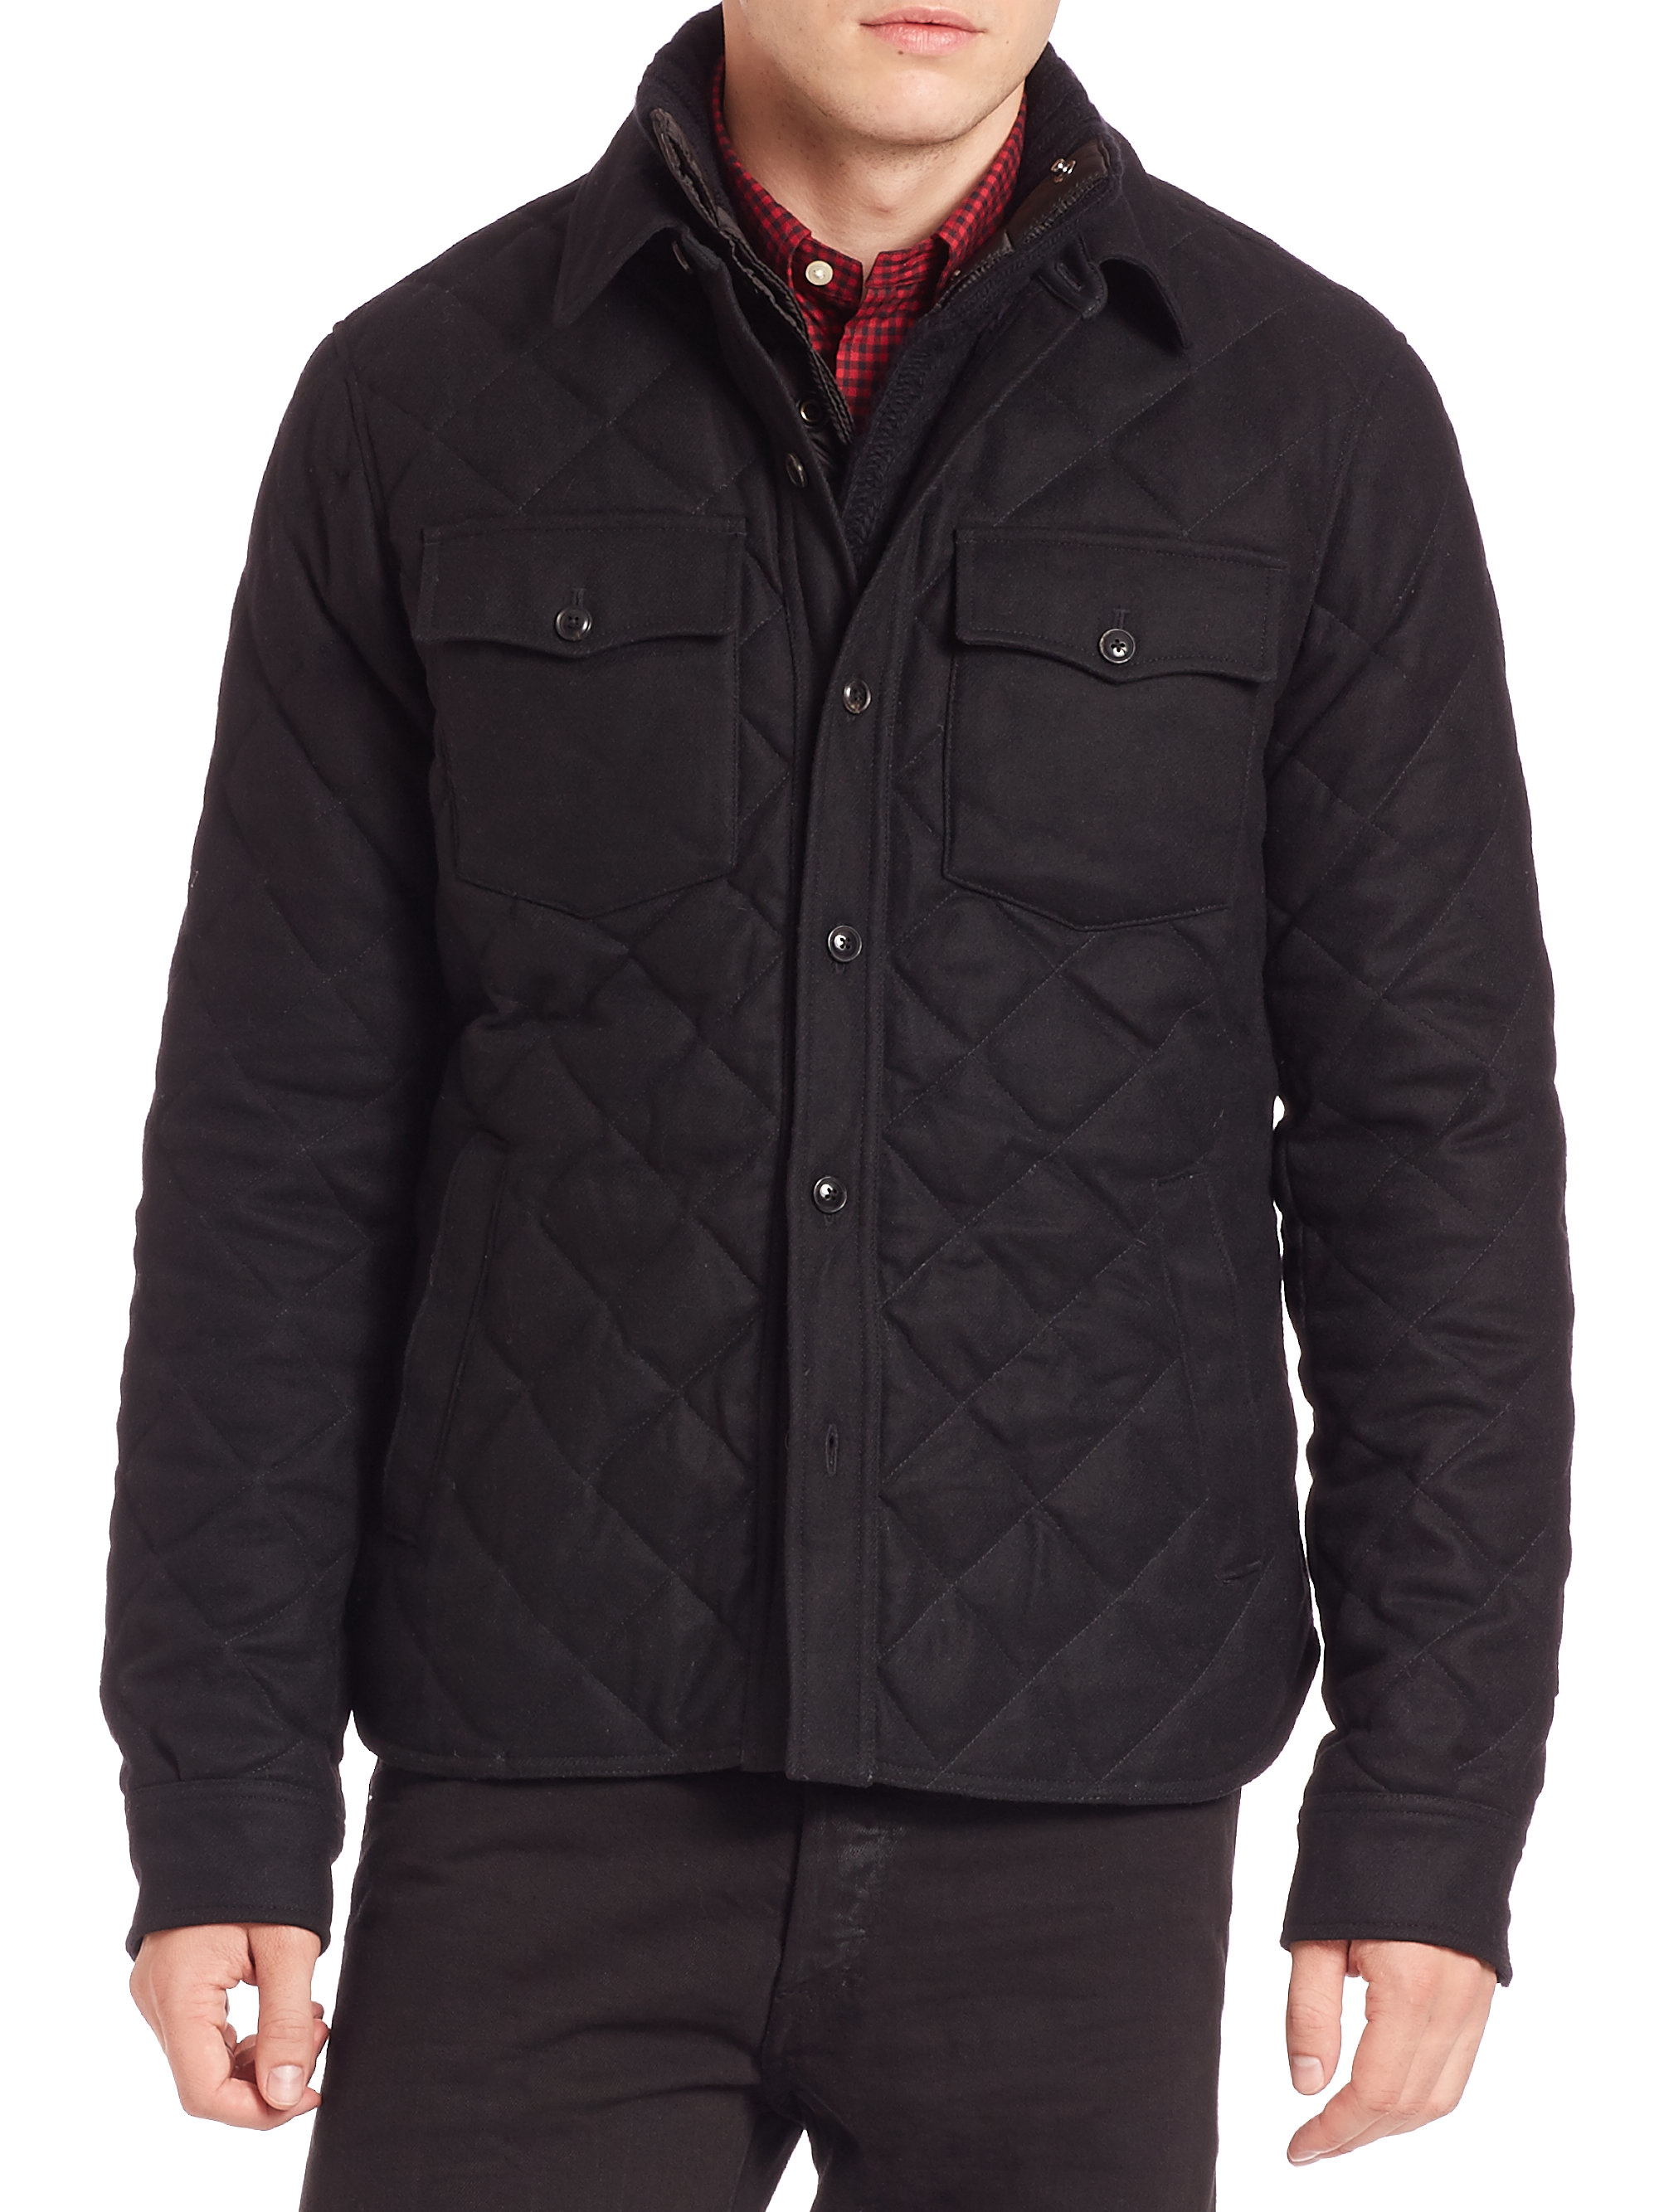 polo ralph lauren quilted officer 39 s jacket in black for men lyst. Black Bedroom Furniture Sets. Home Design Ideas